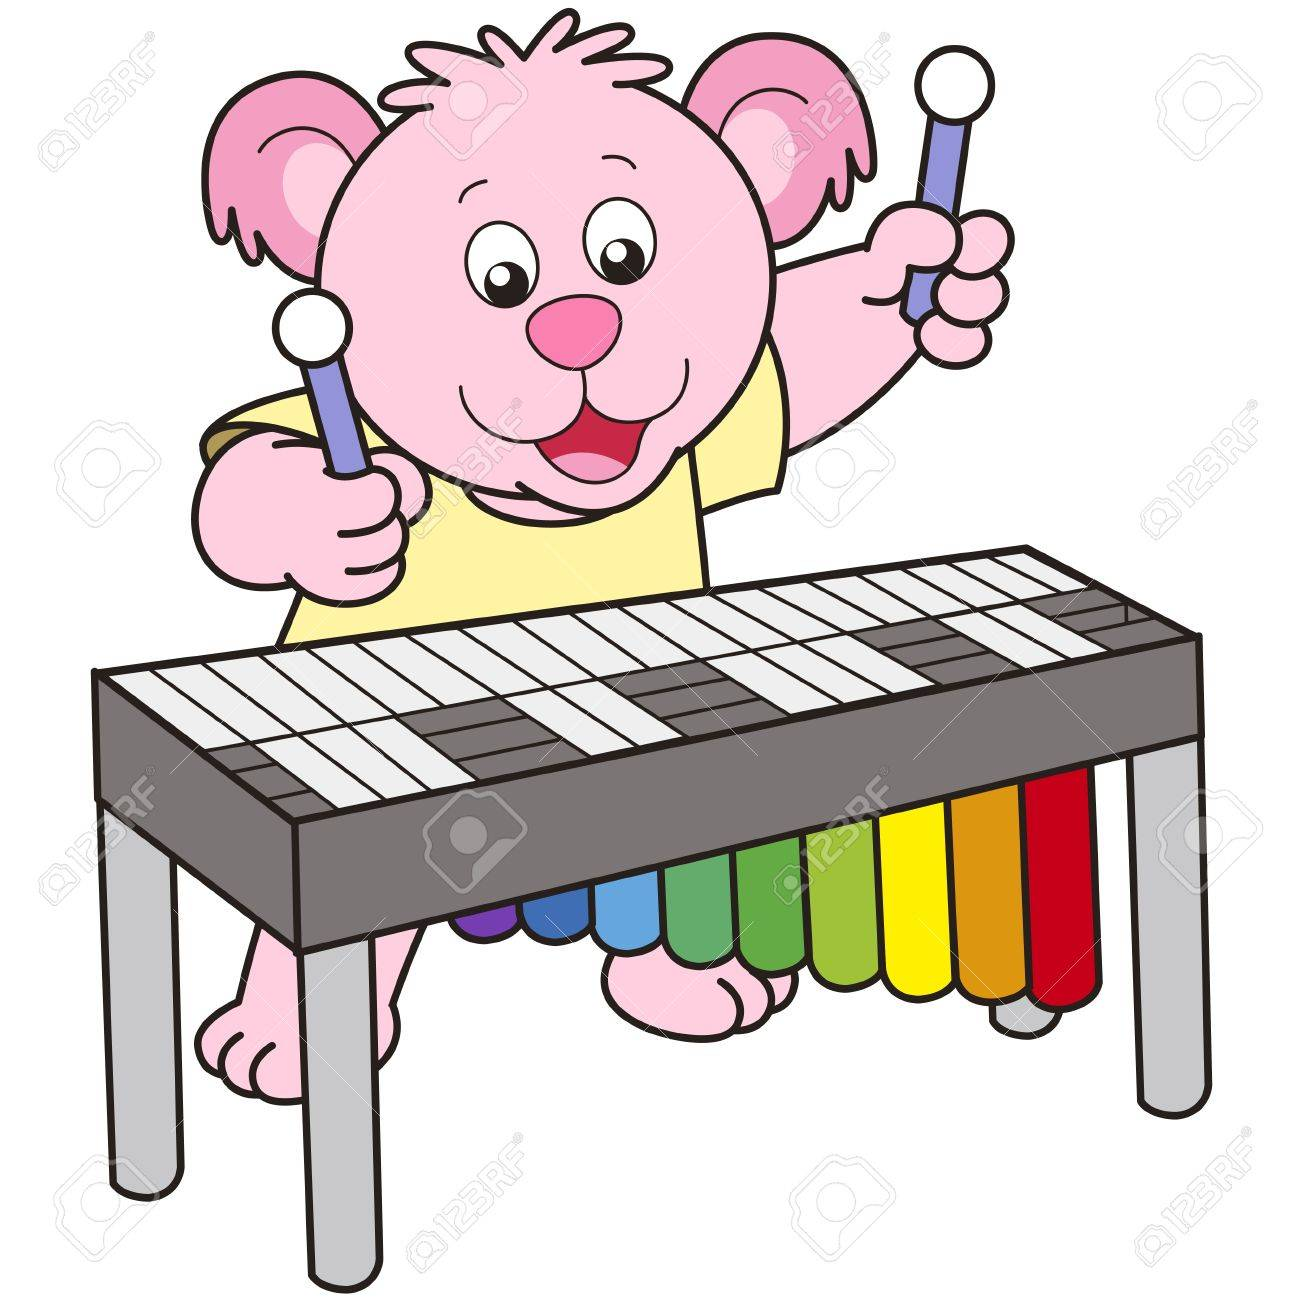 Cartoon Bear playing a vibraphone. Stock Vector - 18589342